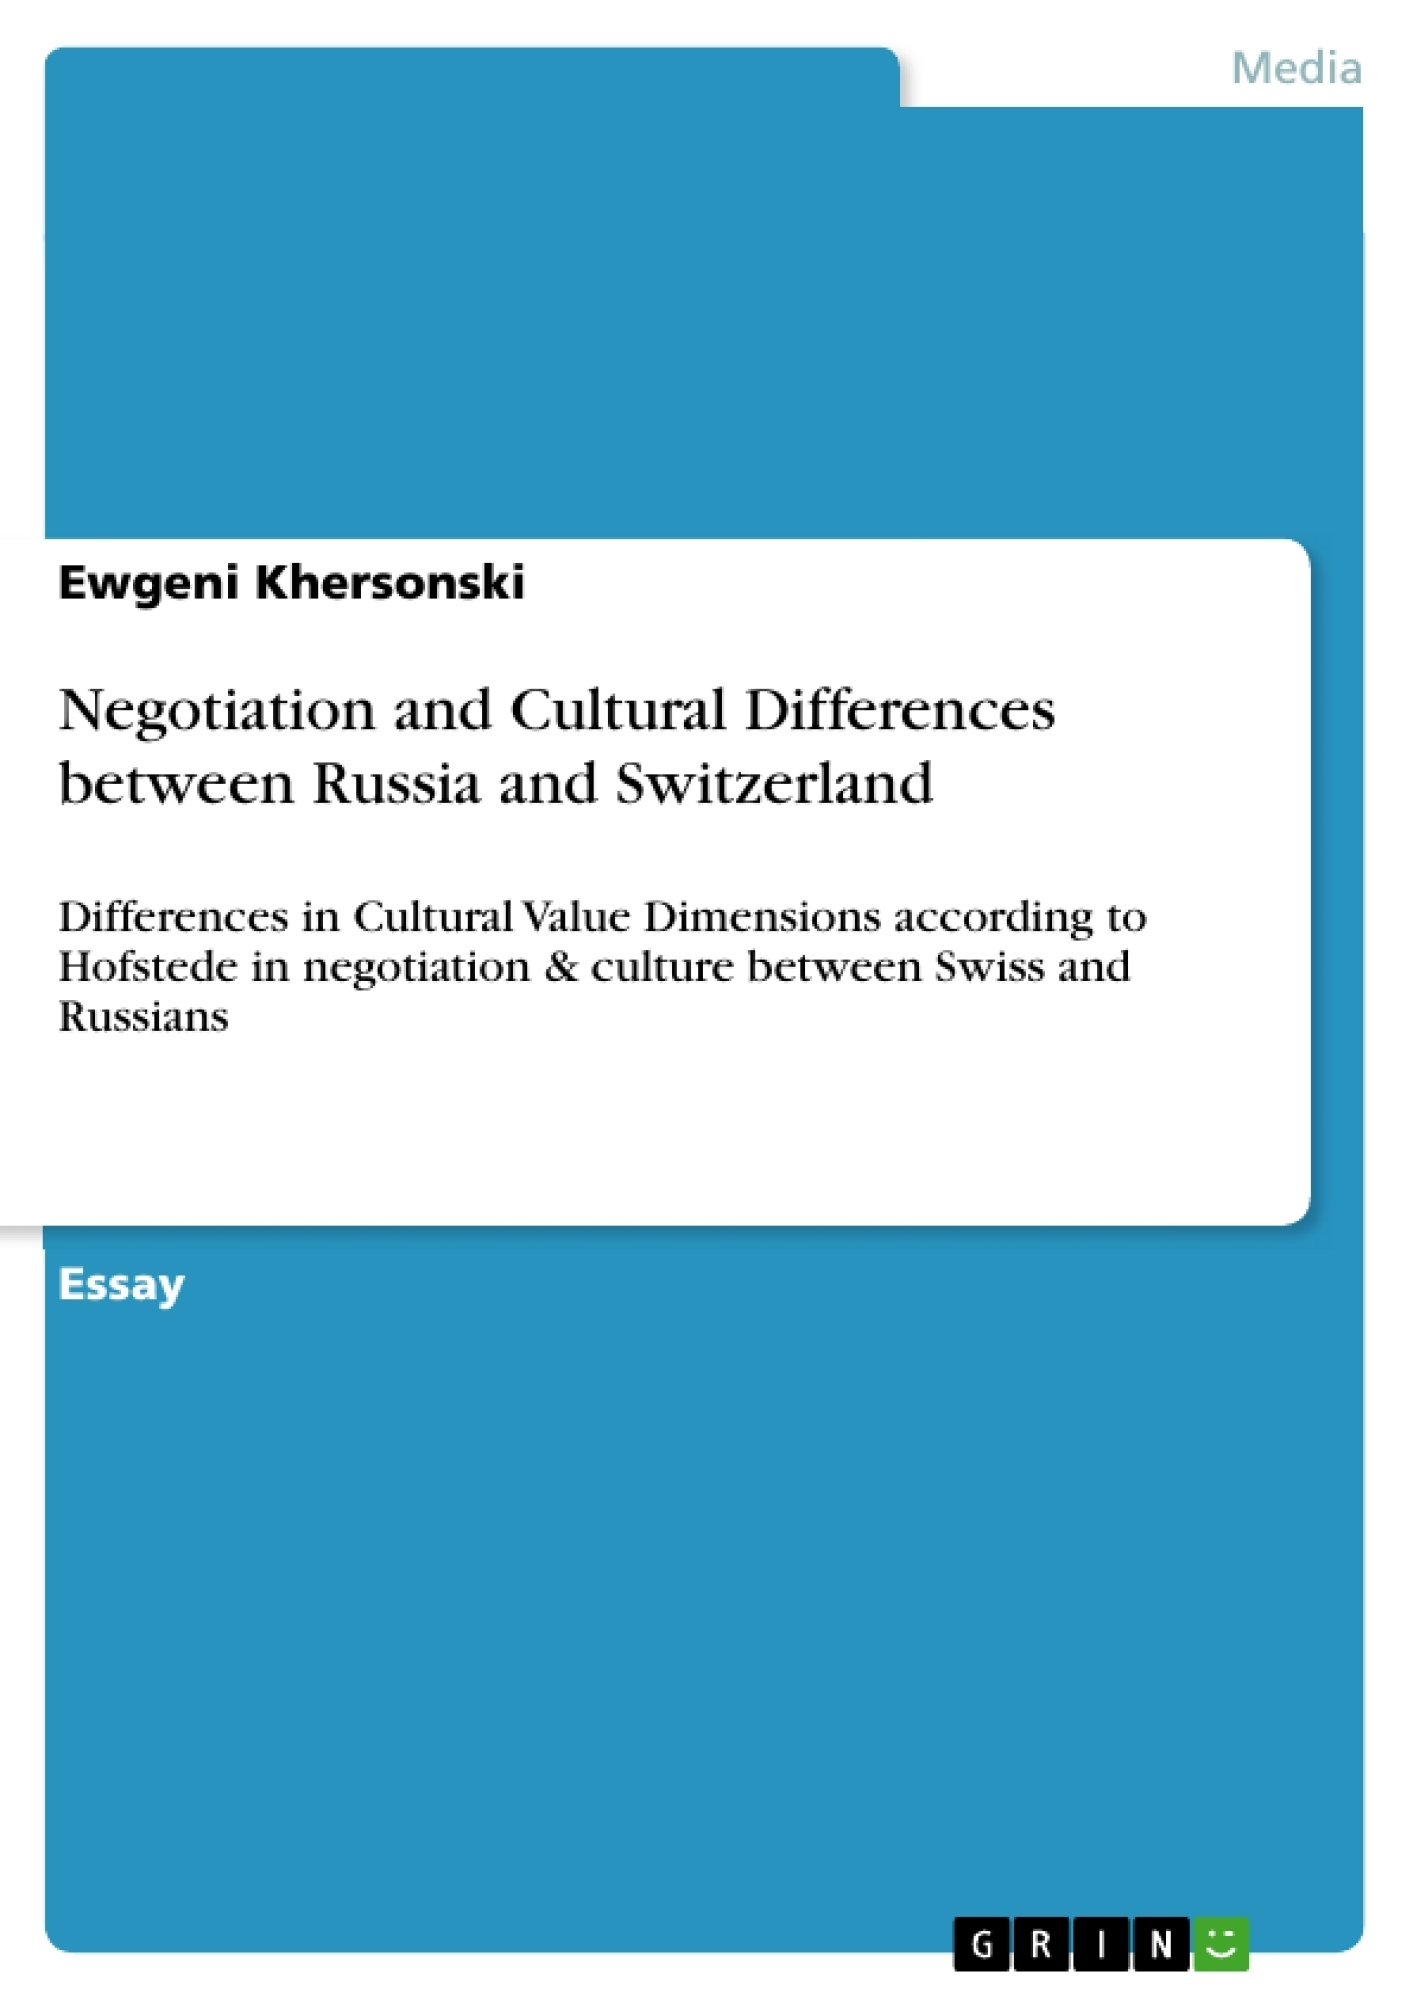 Title: Negotiation and Cultural Differences between Russia and Switzerland